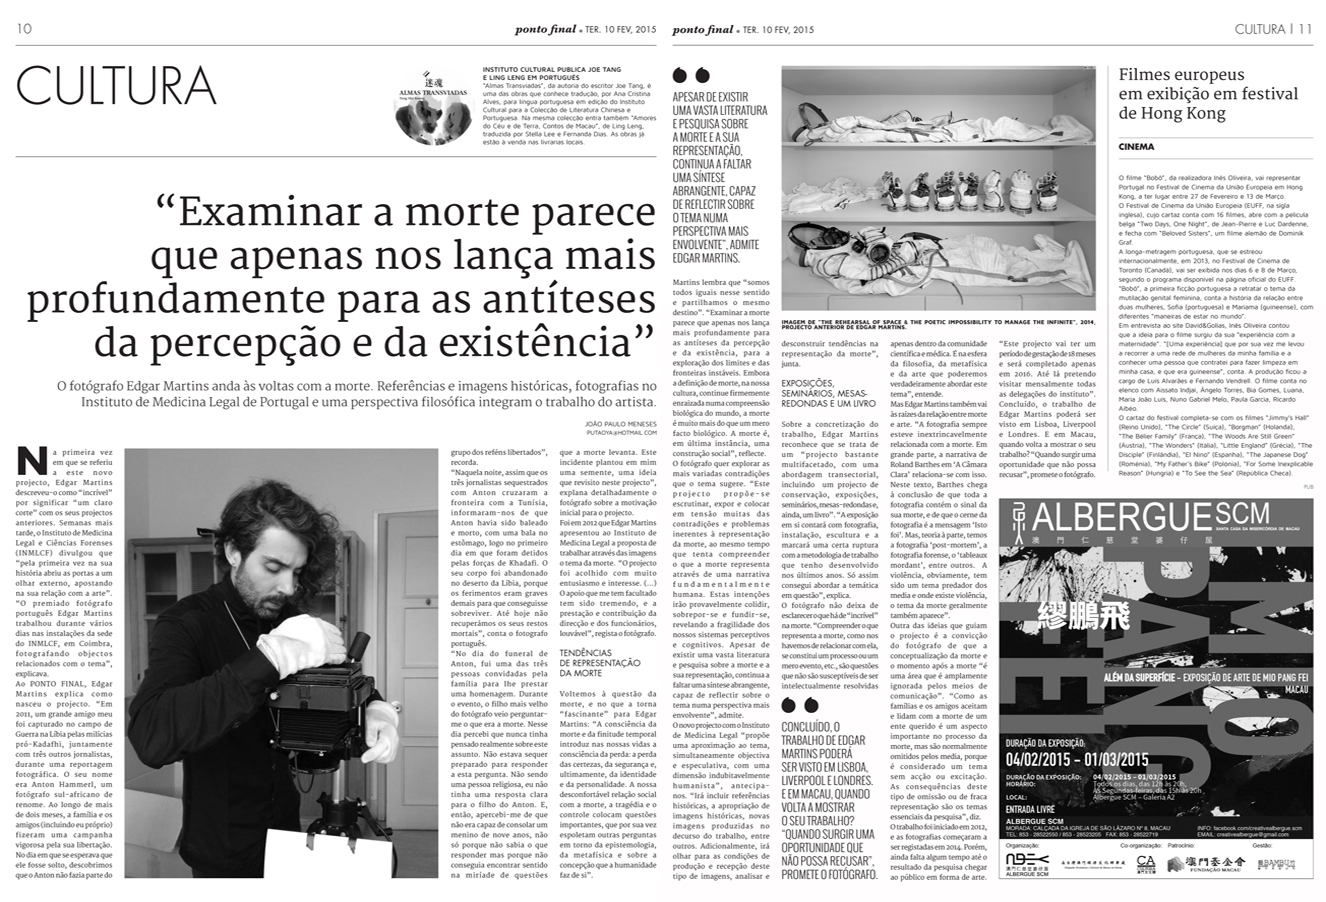 Ponto Final interviews Edgar Martins about his work with the Institute of Legal Medicine